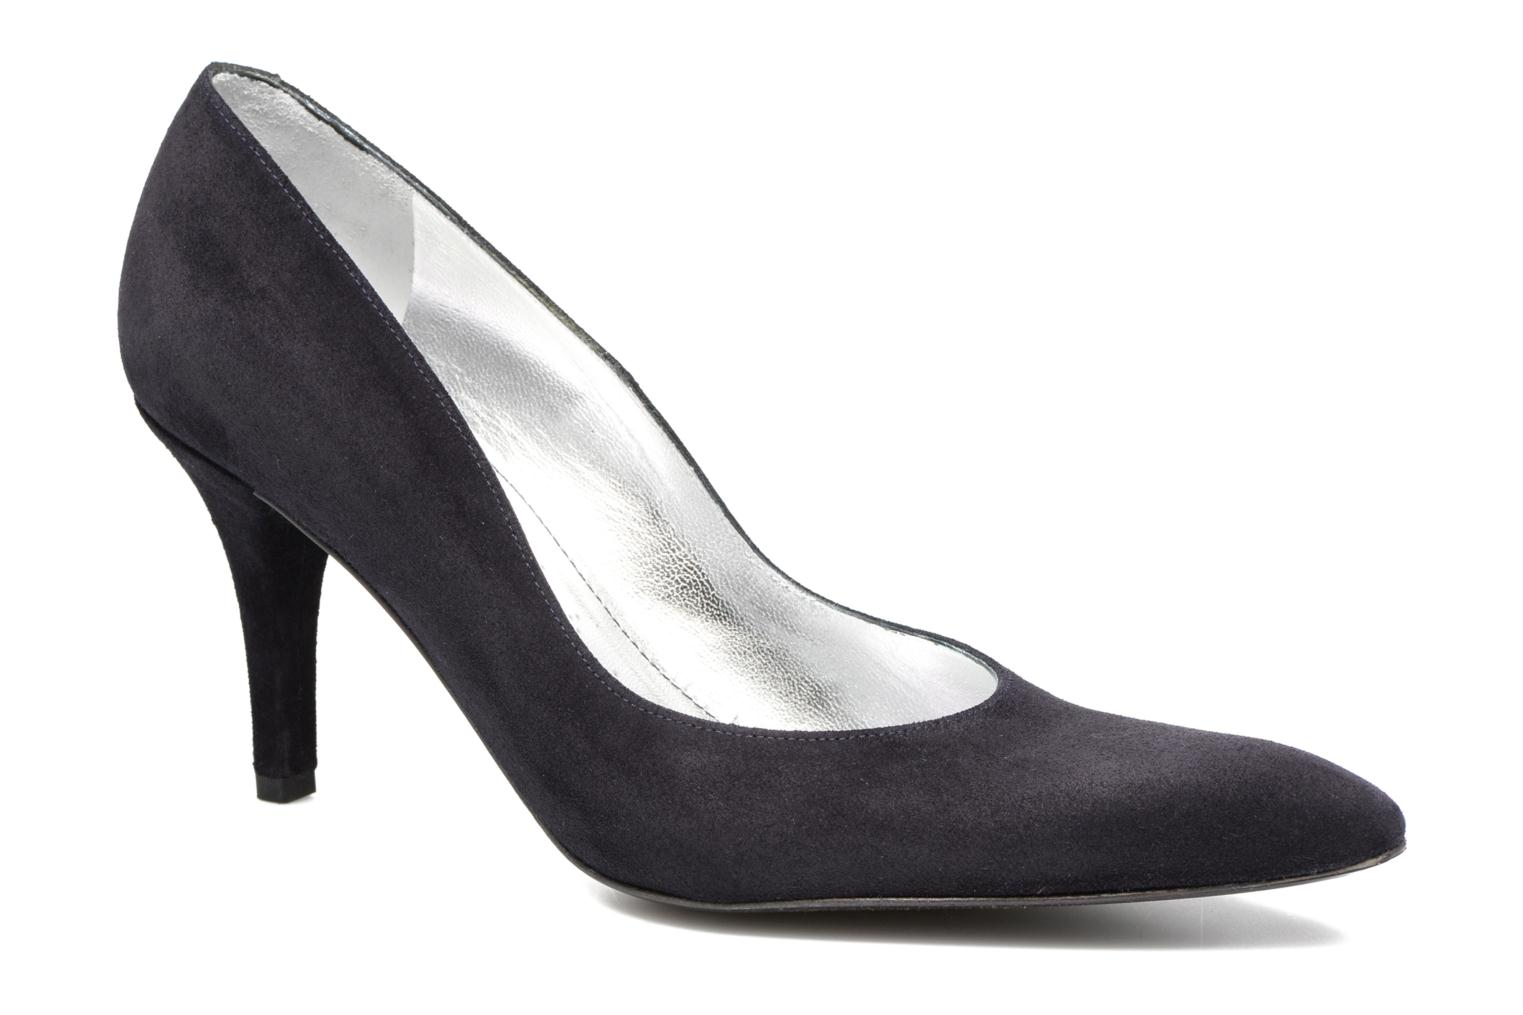 Jaspe 7 pumps Sonia extra outremer